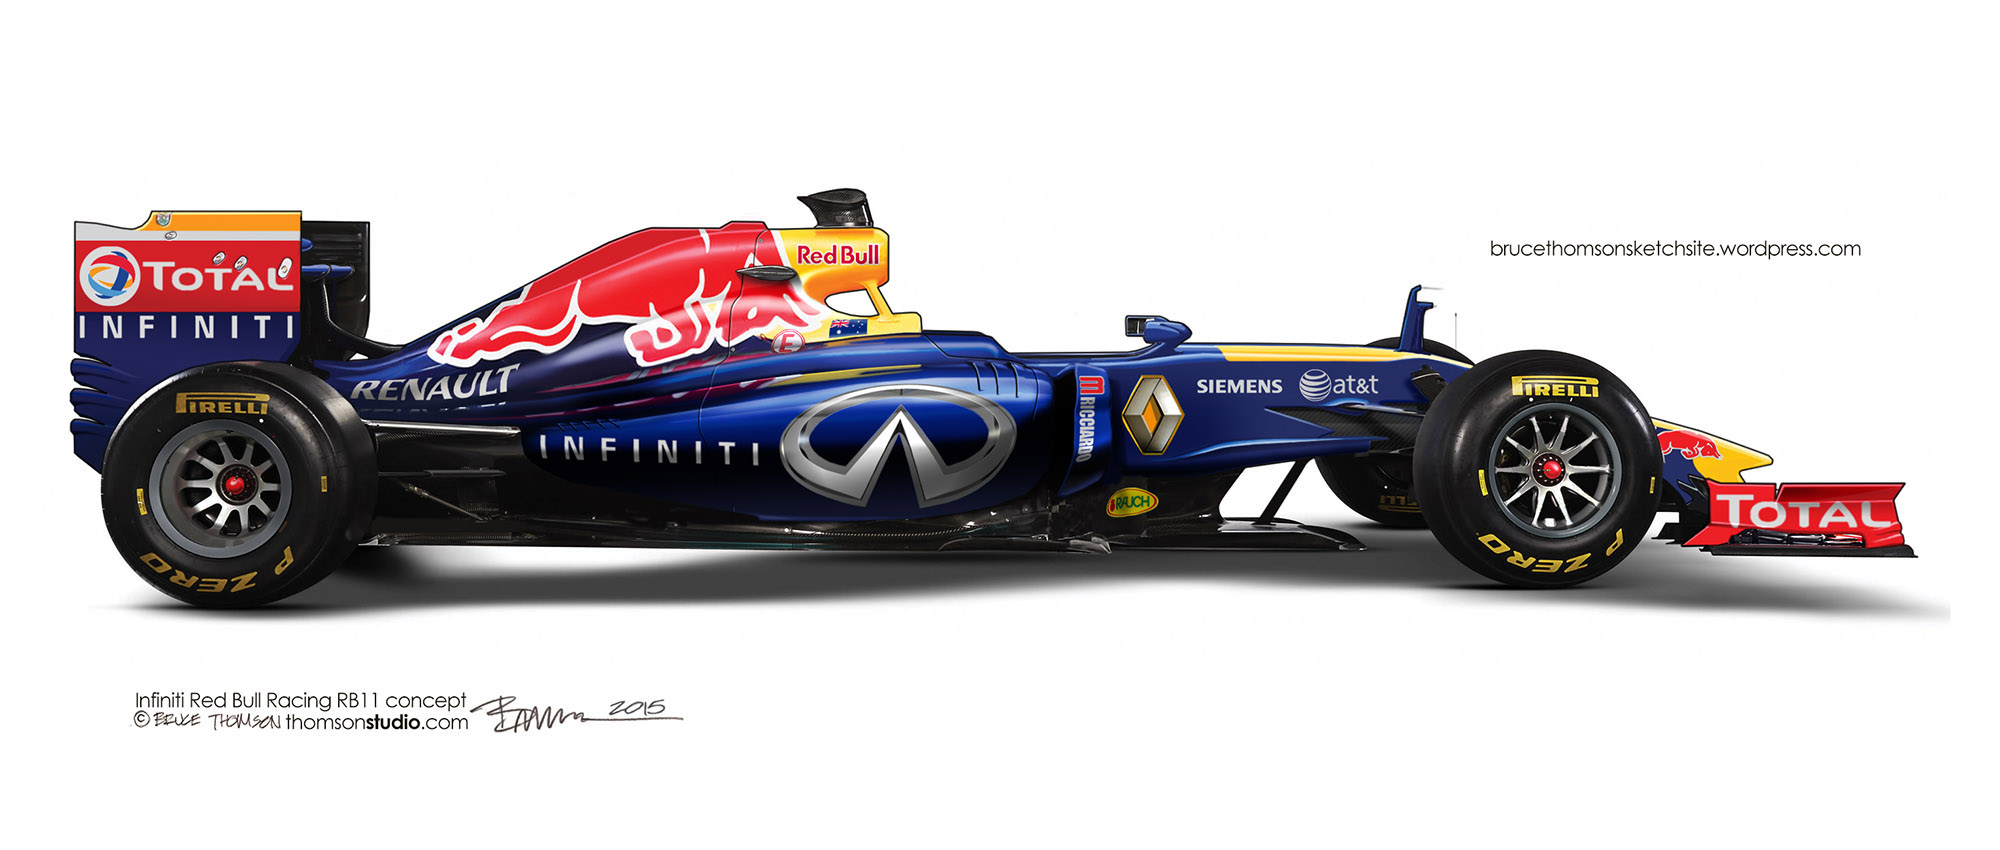 Red Bull Rb11 2015 Infiniti Red Bull Racing Rb11 Concept Caught In My Headlights